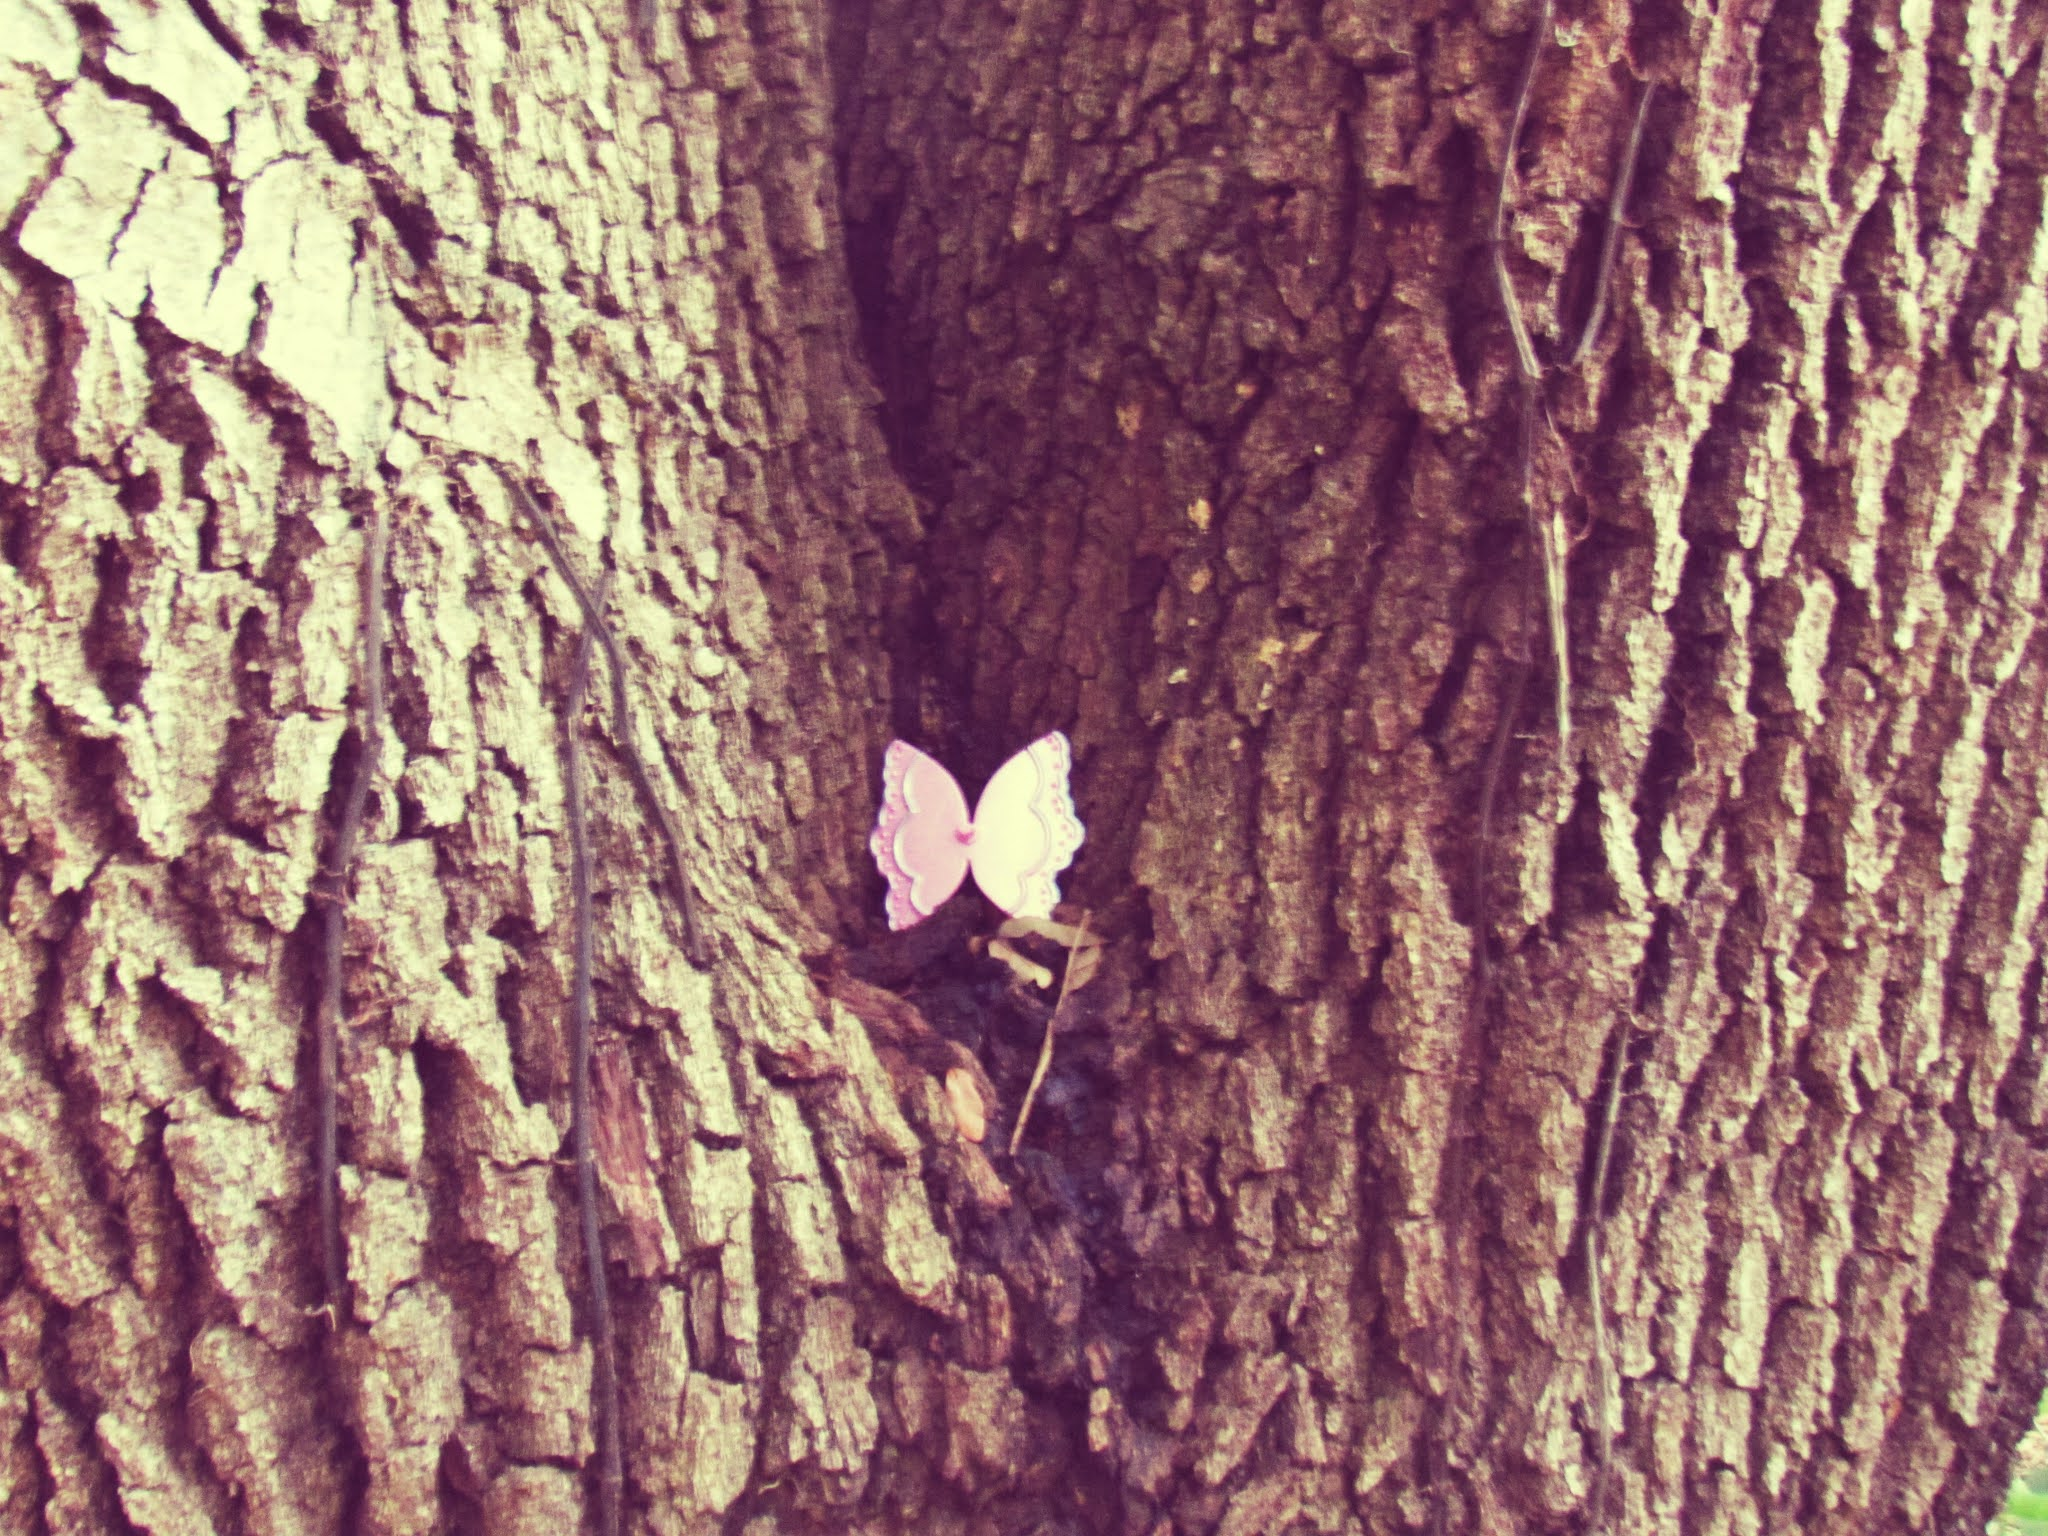 An oak tree with pink fairy wings, girl novelty fairy wings toy, in an oak tree forest